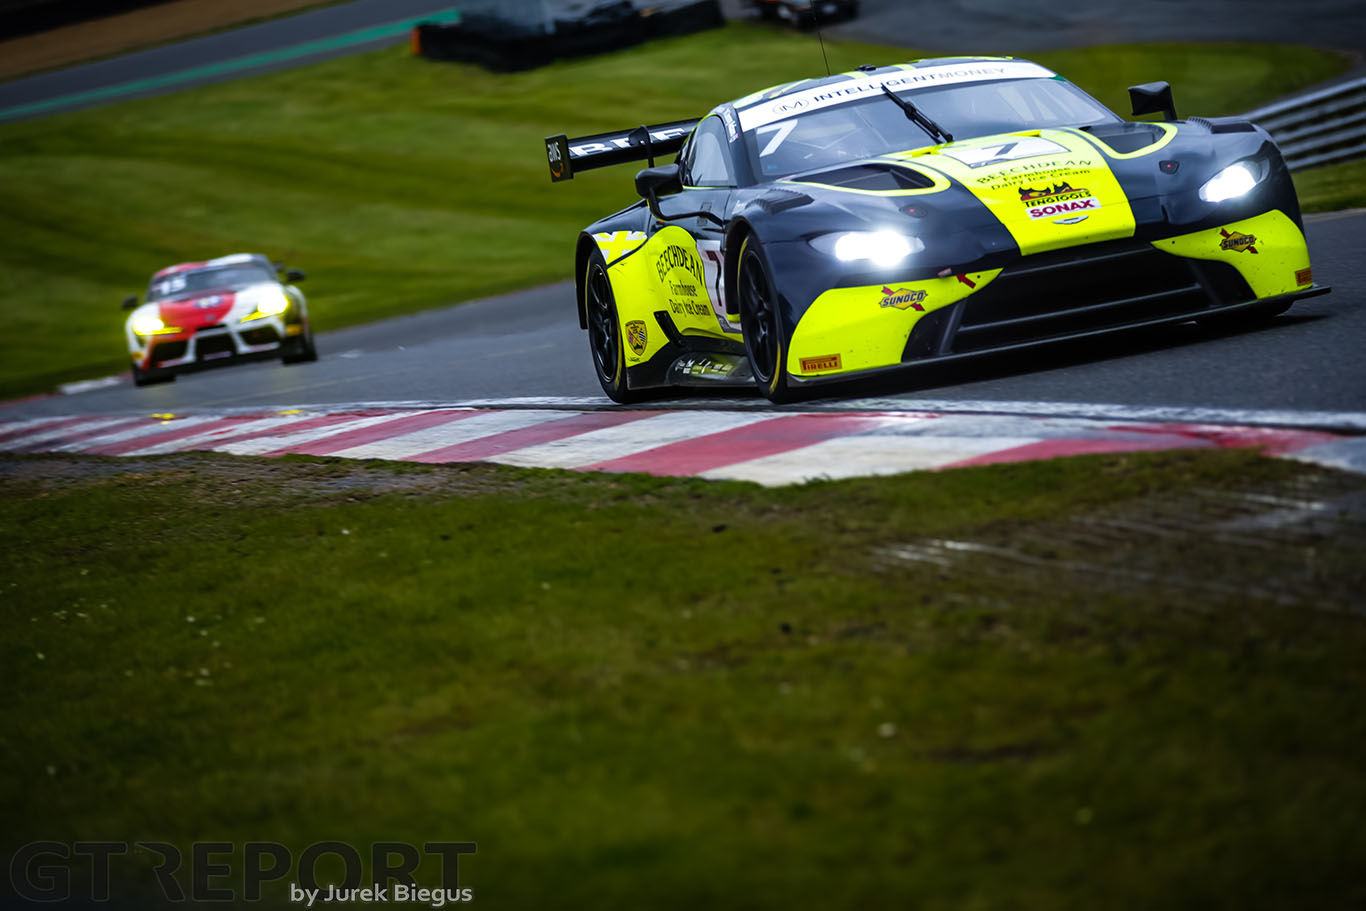 British GT Brands Hatch: Beechdean AMR and Century storm to pole positions